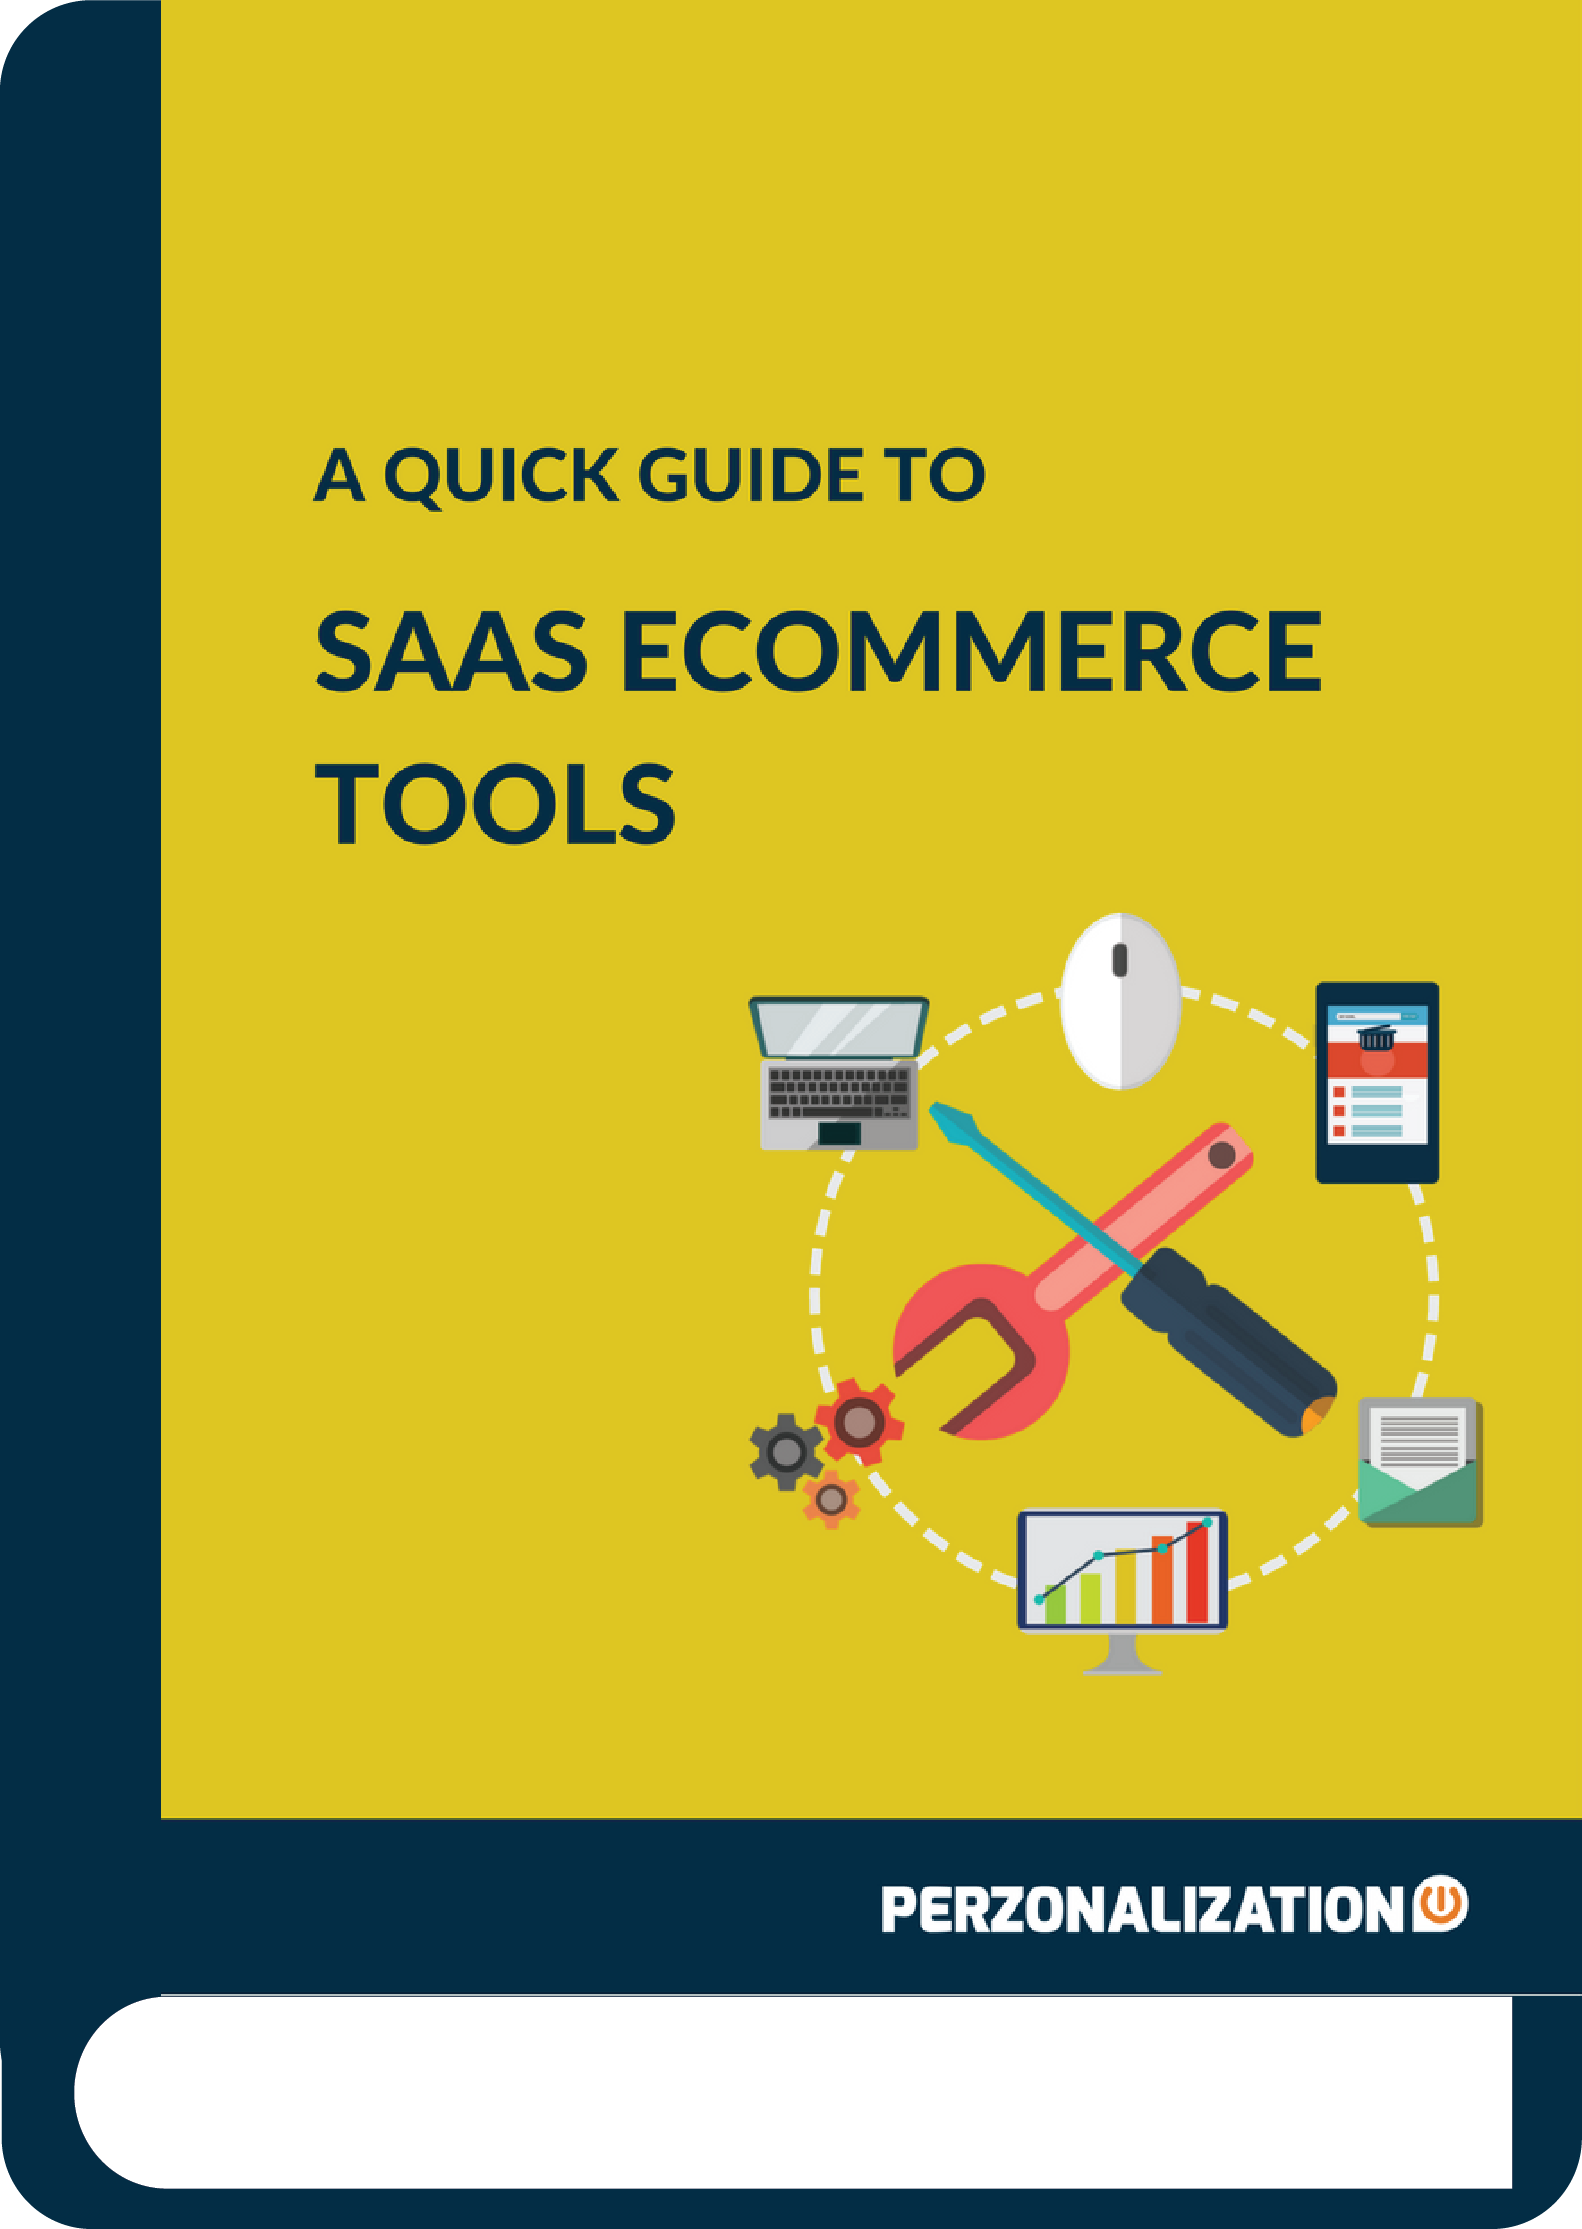 SaaS based eCommerce tools has made online business a safer and easily customizable shopping experience. They also are convenient and cost effective.